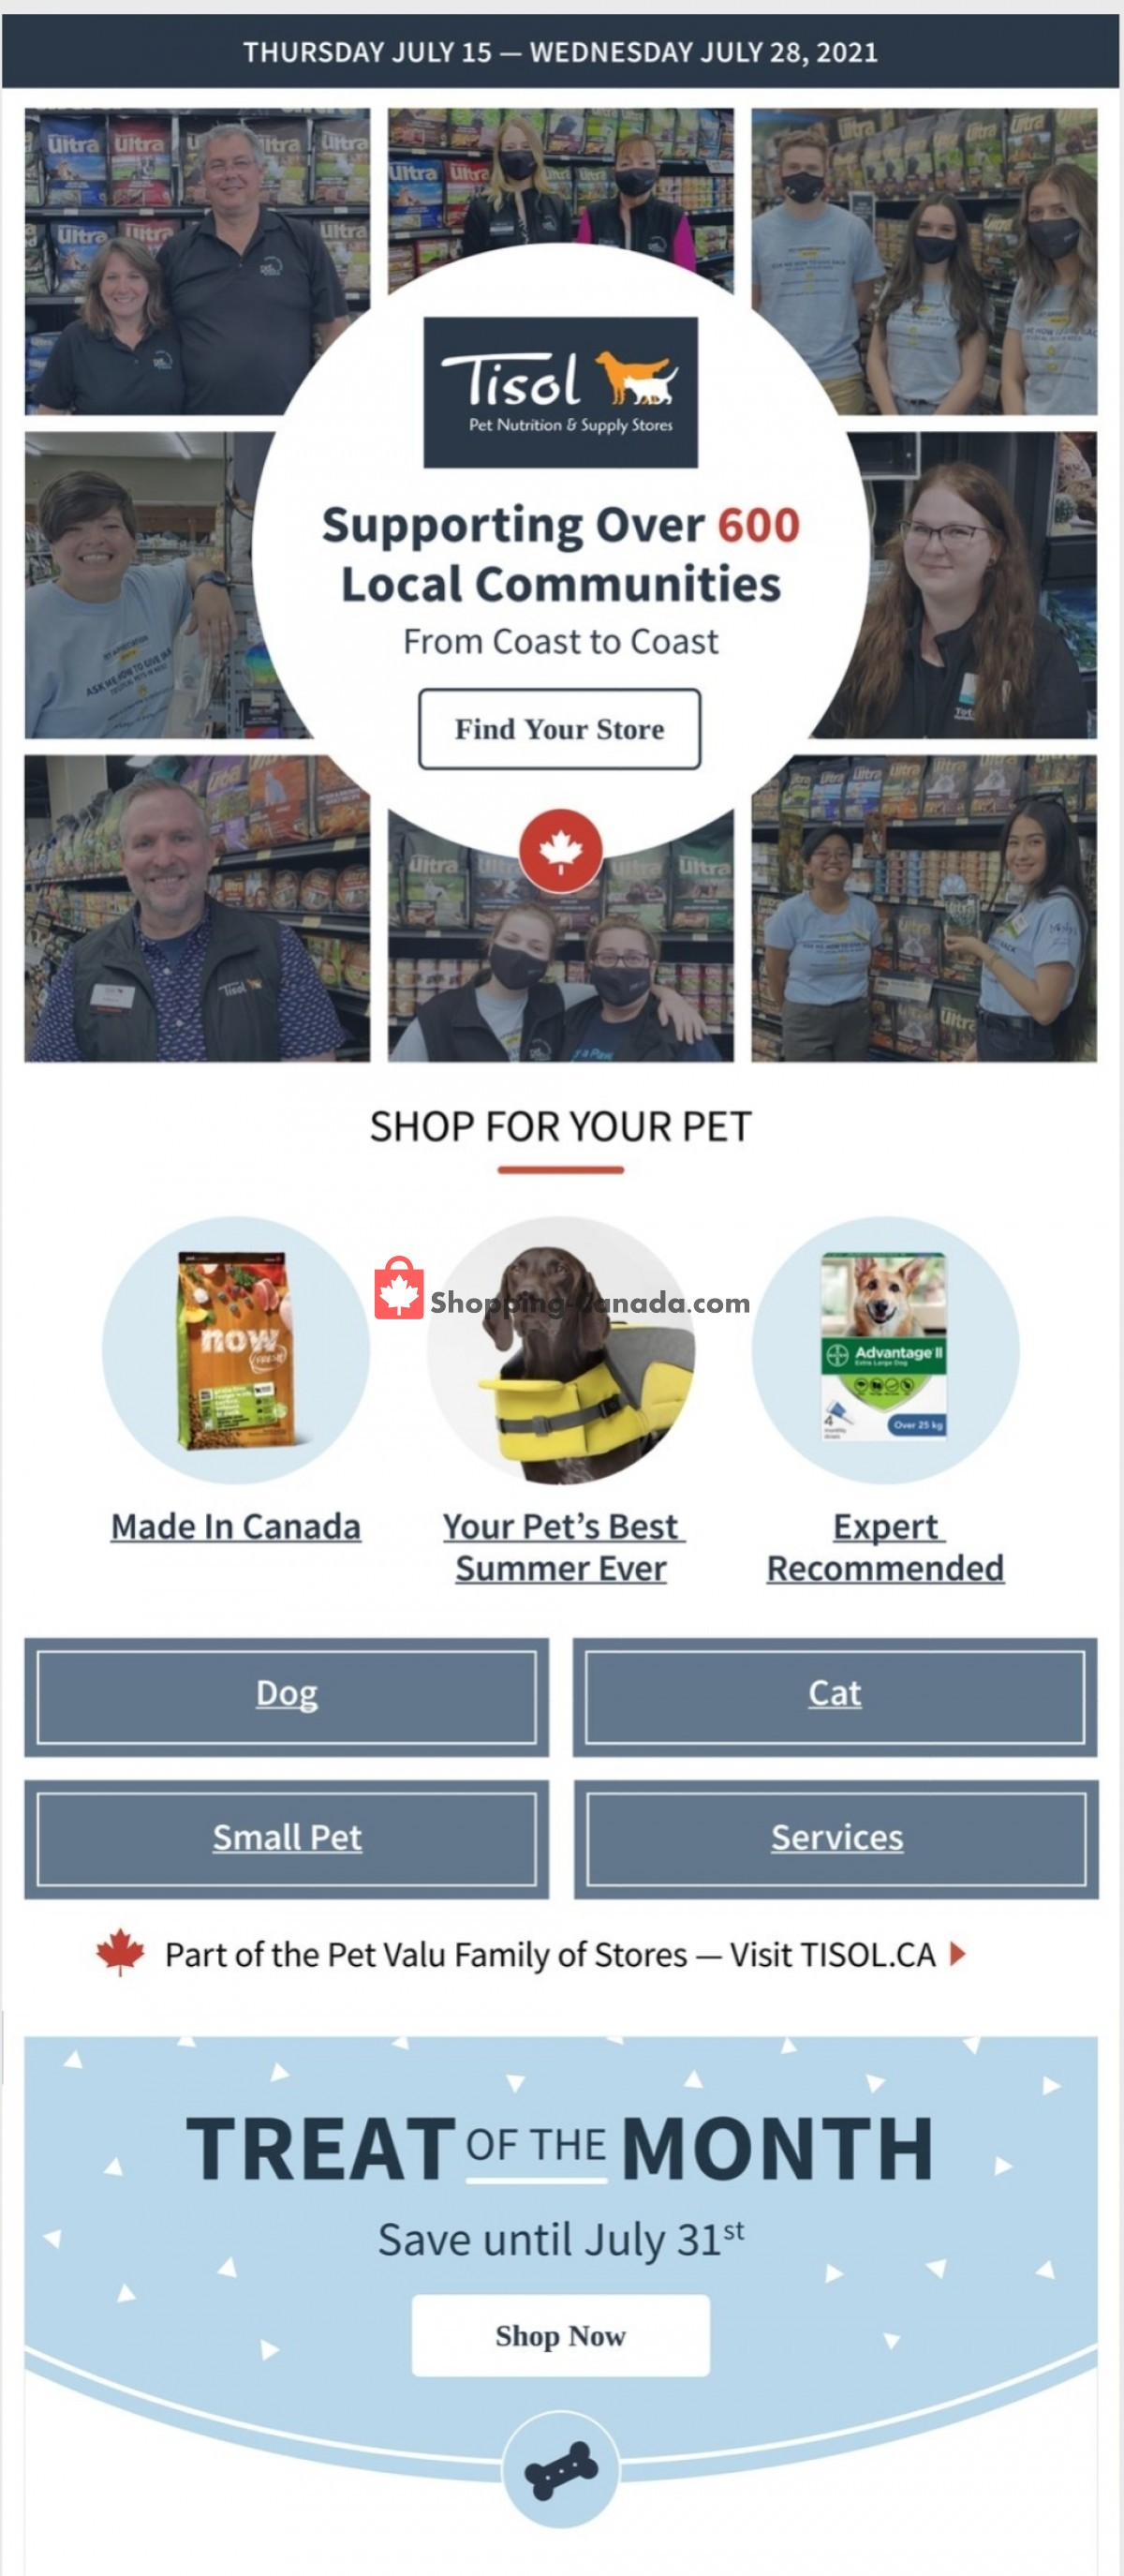 Flyer Tisol Pet Nutrition And Supply Stores Canada - from Thursday July 15, 2021 to Wednesday July 28, 2021